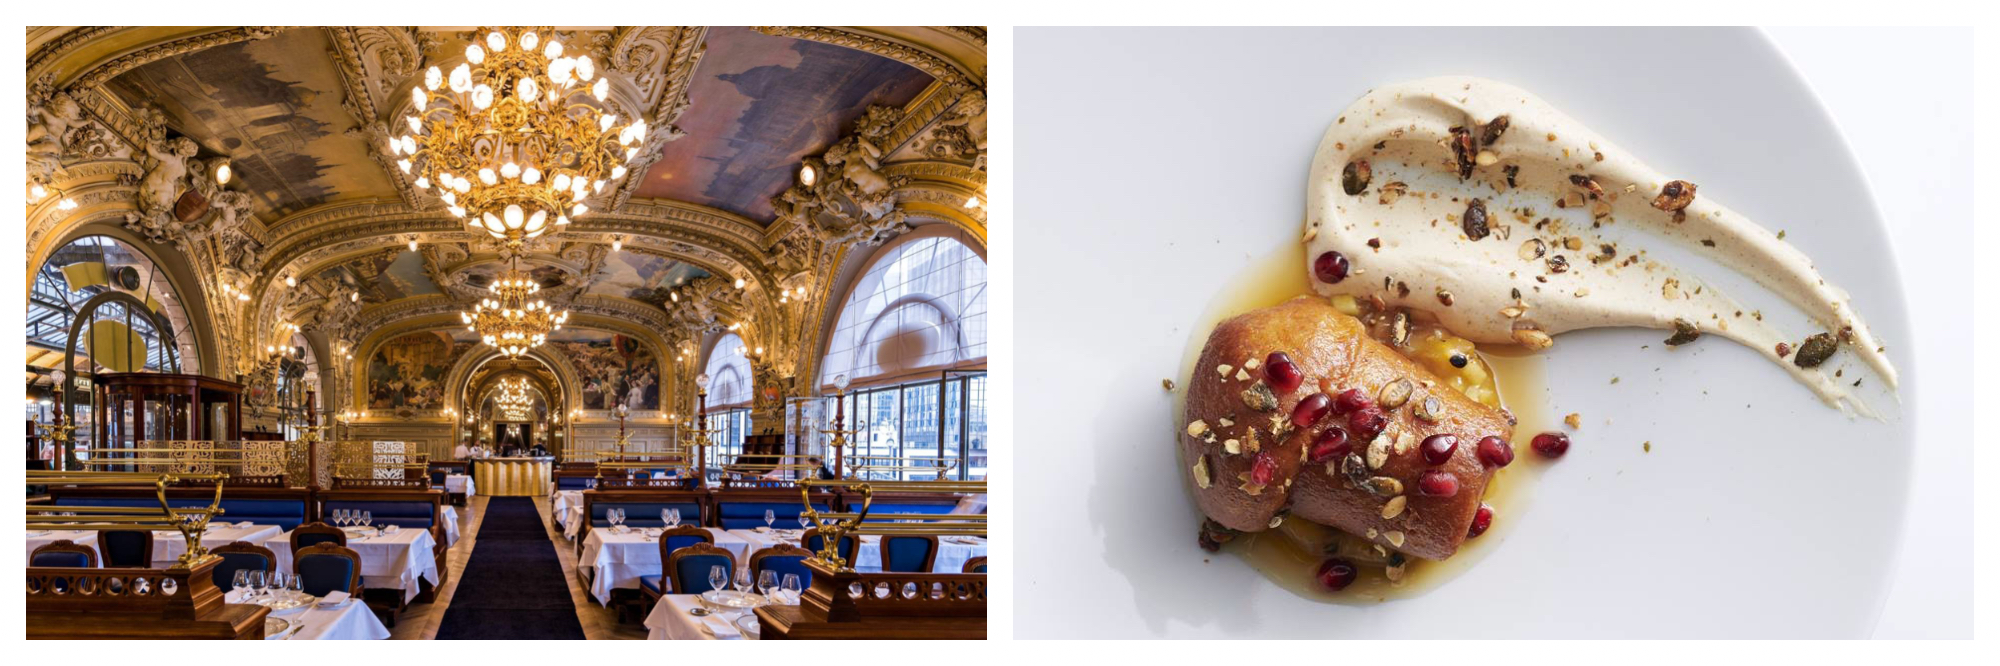 The opulent interior of the restaurant Le Train Bleu in Paris, featuring painted frescos and gold chandeliers (left). A bird's eye view of the rum baba dessert from the restaurant Fouquet's in Paris (right).